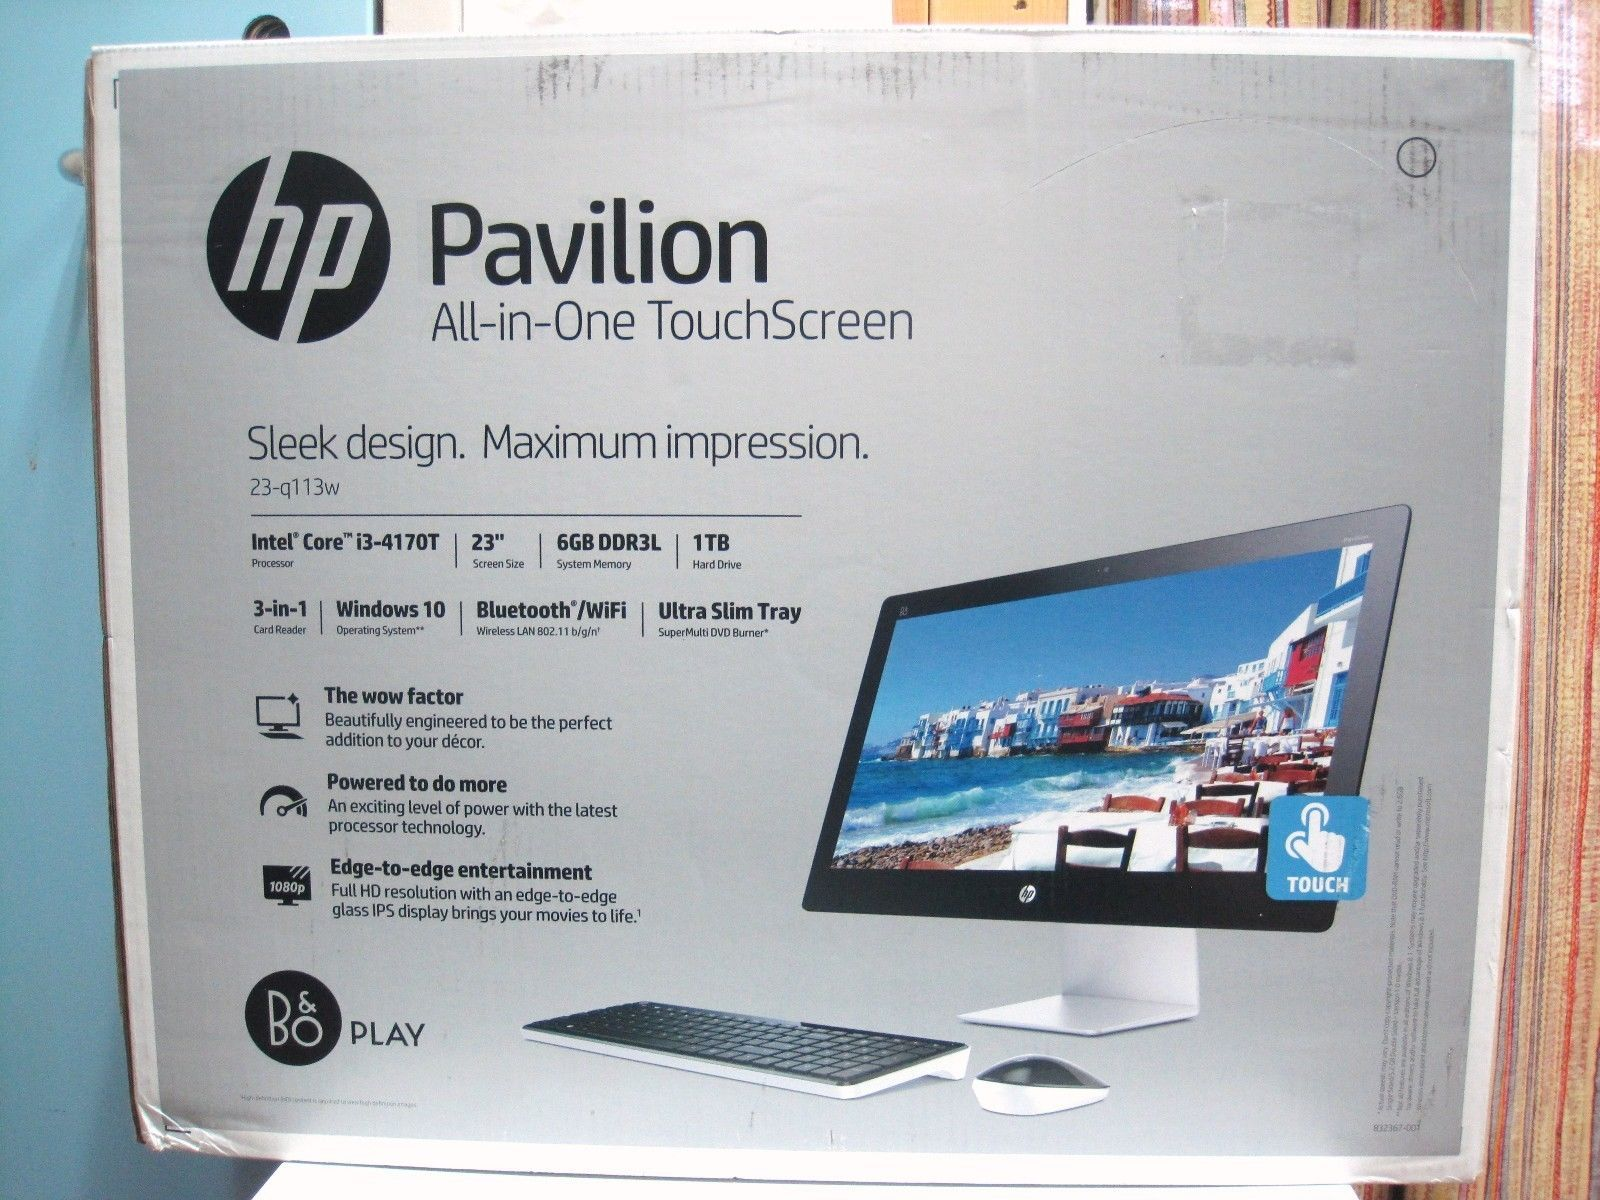 HP Pavilion 23-q113w All in One Intel Core i3-4170T 23\